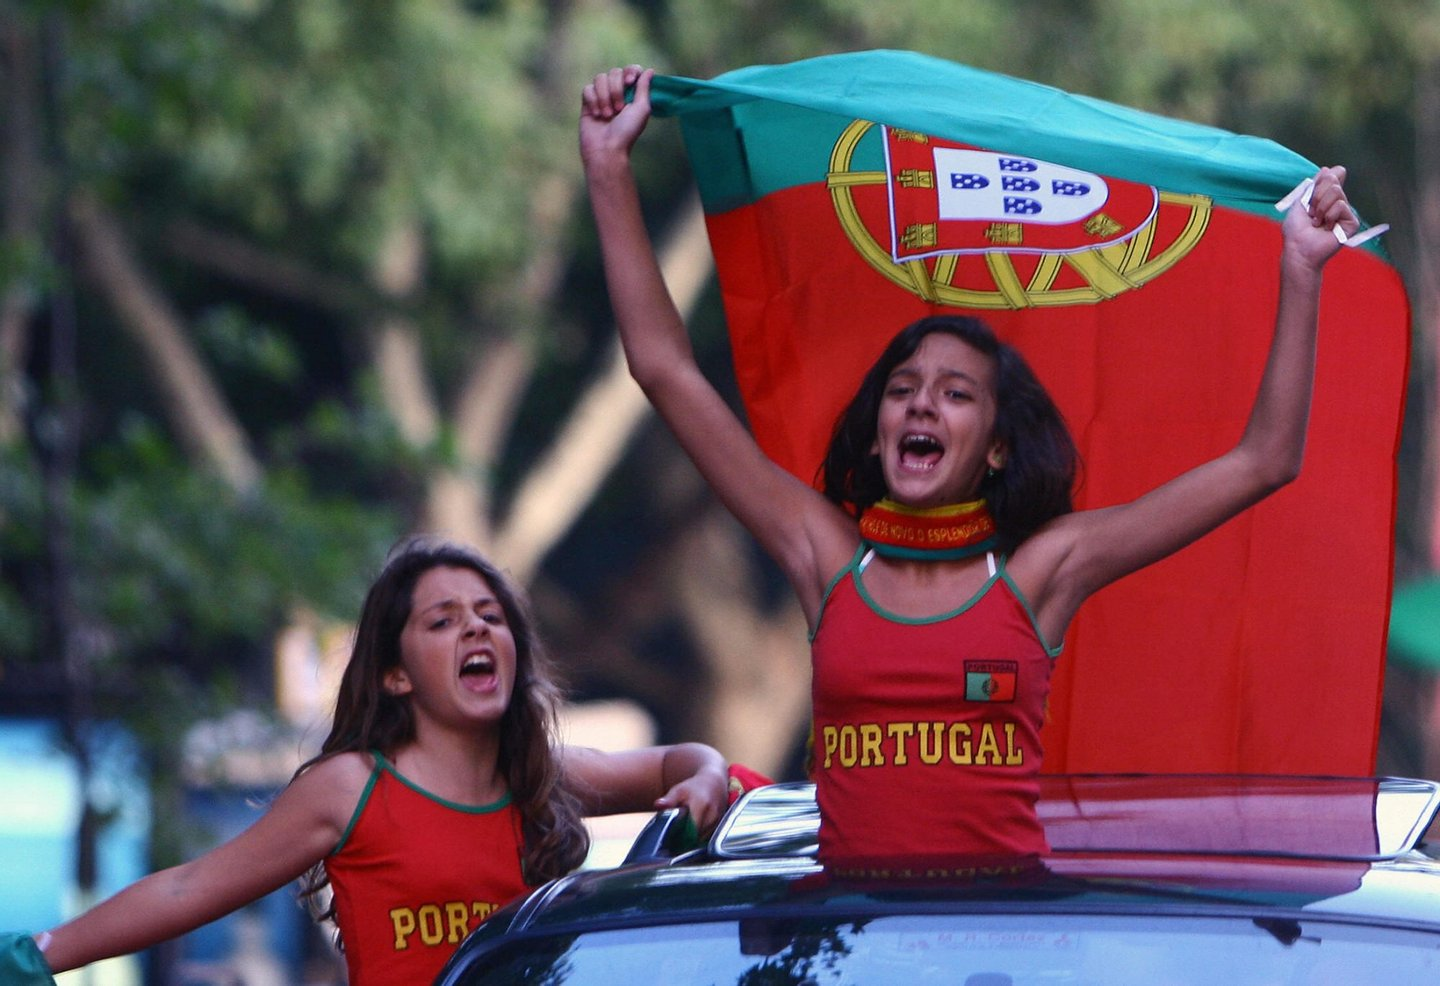 Lisbon, PORTUGAL: Portuguese fans celebrate beating England 1-4 in their World Cup 2006 quarter-final match 01 July 2006 in Lisbon. AFP PHOTO/ FRANCISCO LEONG (Photo credit should read FRANCISCO LEONG/AFP/Getty Images)